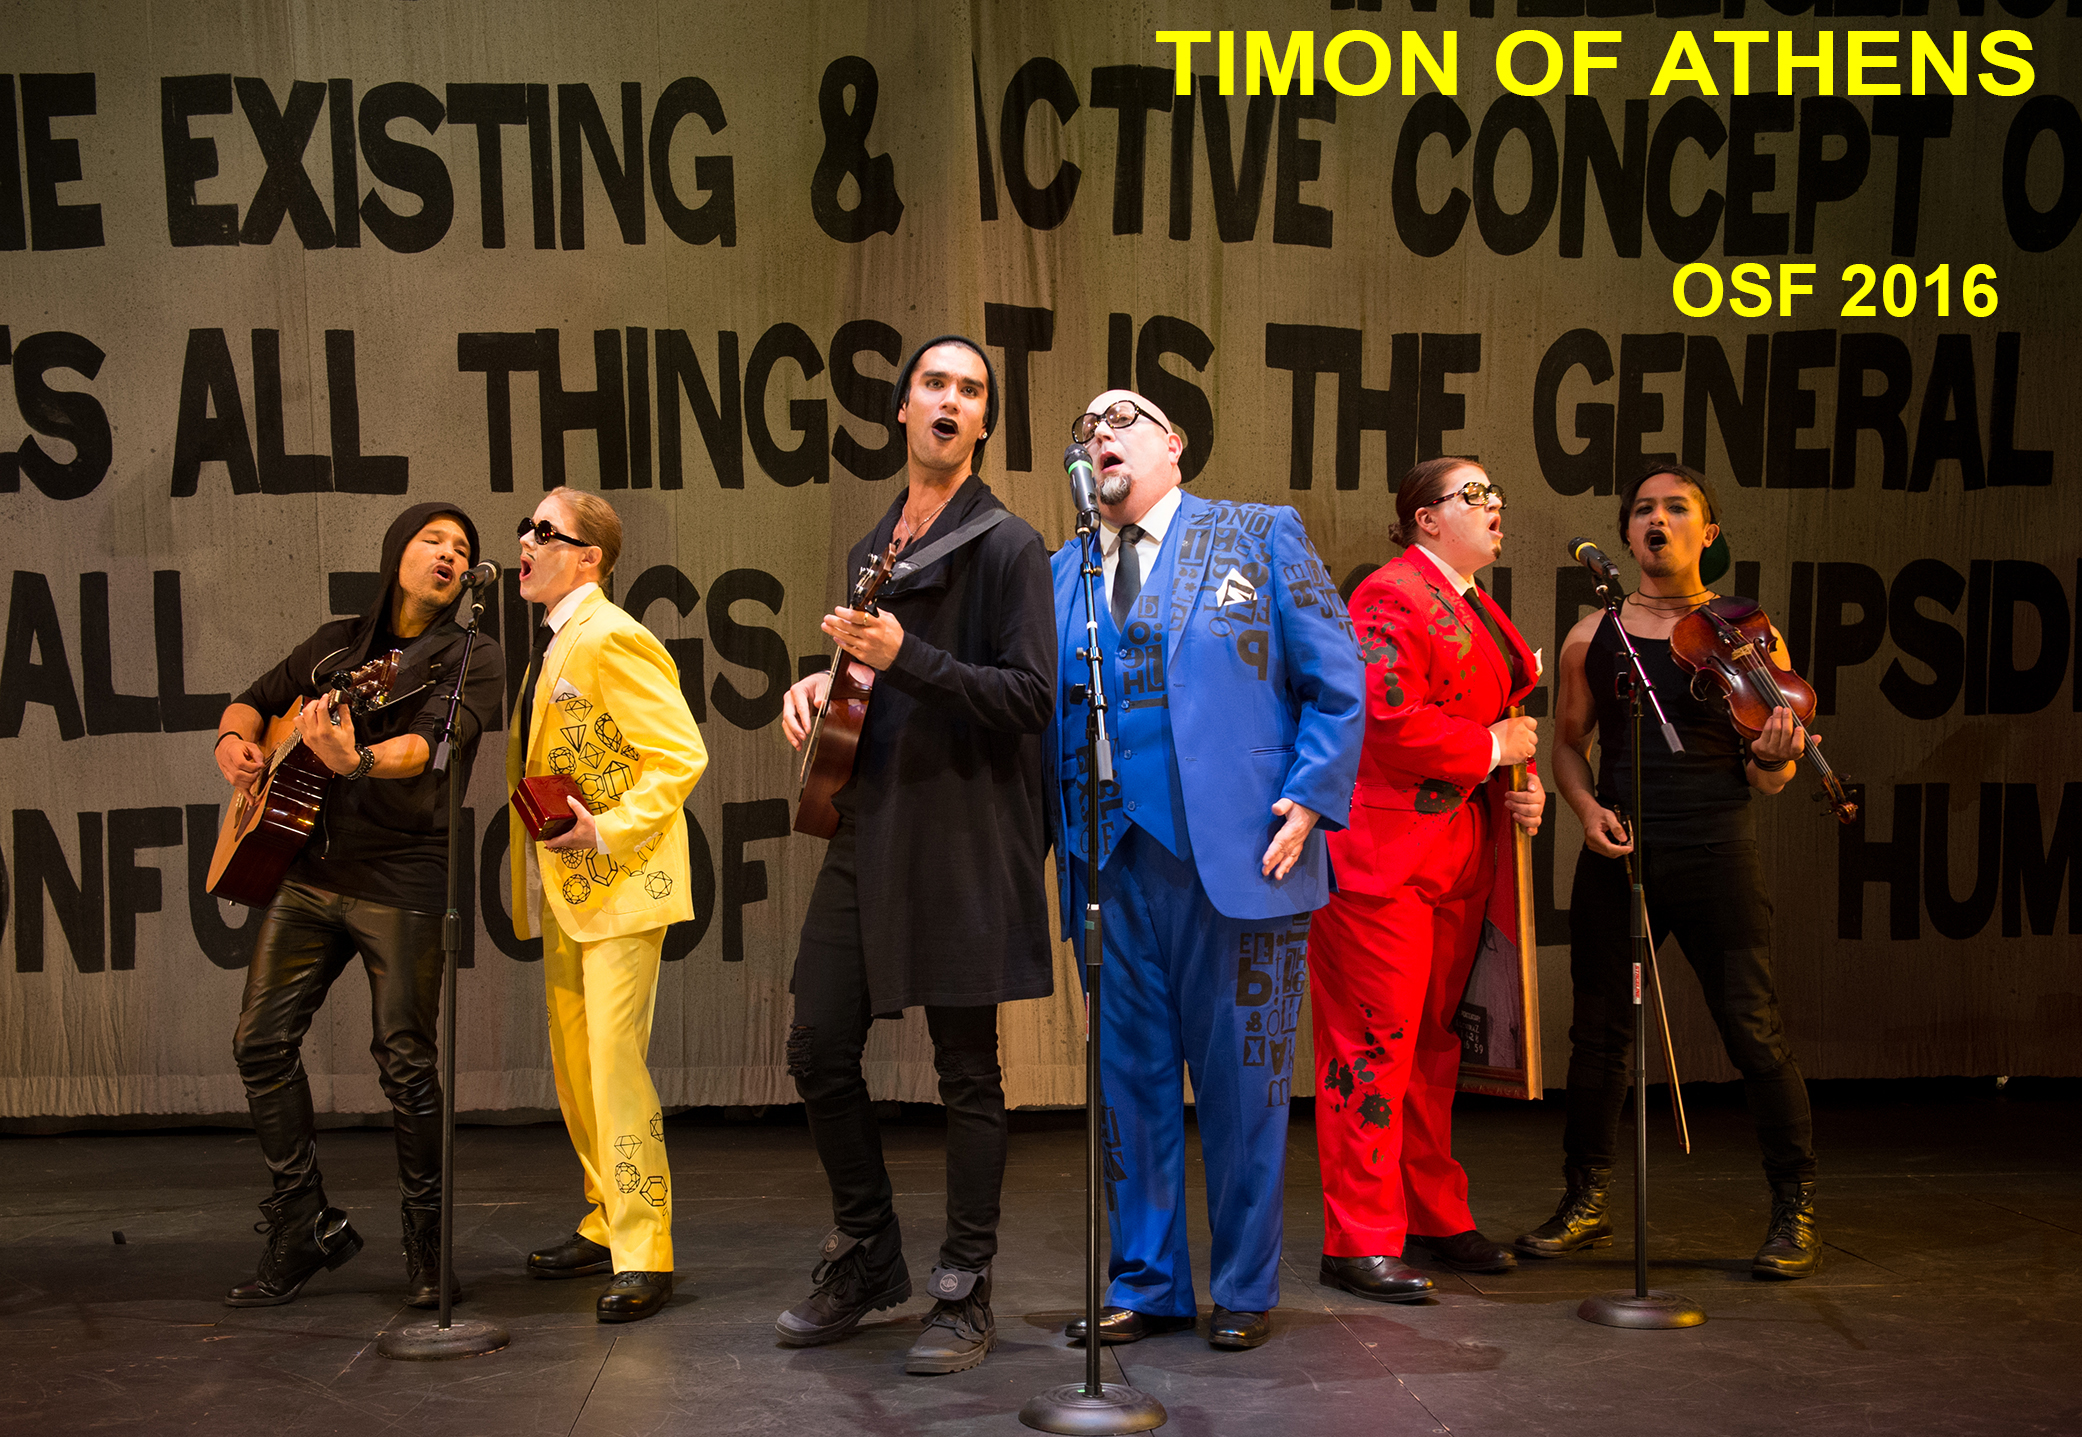 OSF 2016 TIMON OF ATHENS